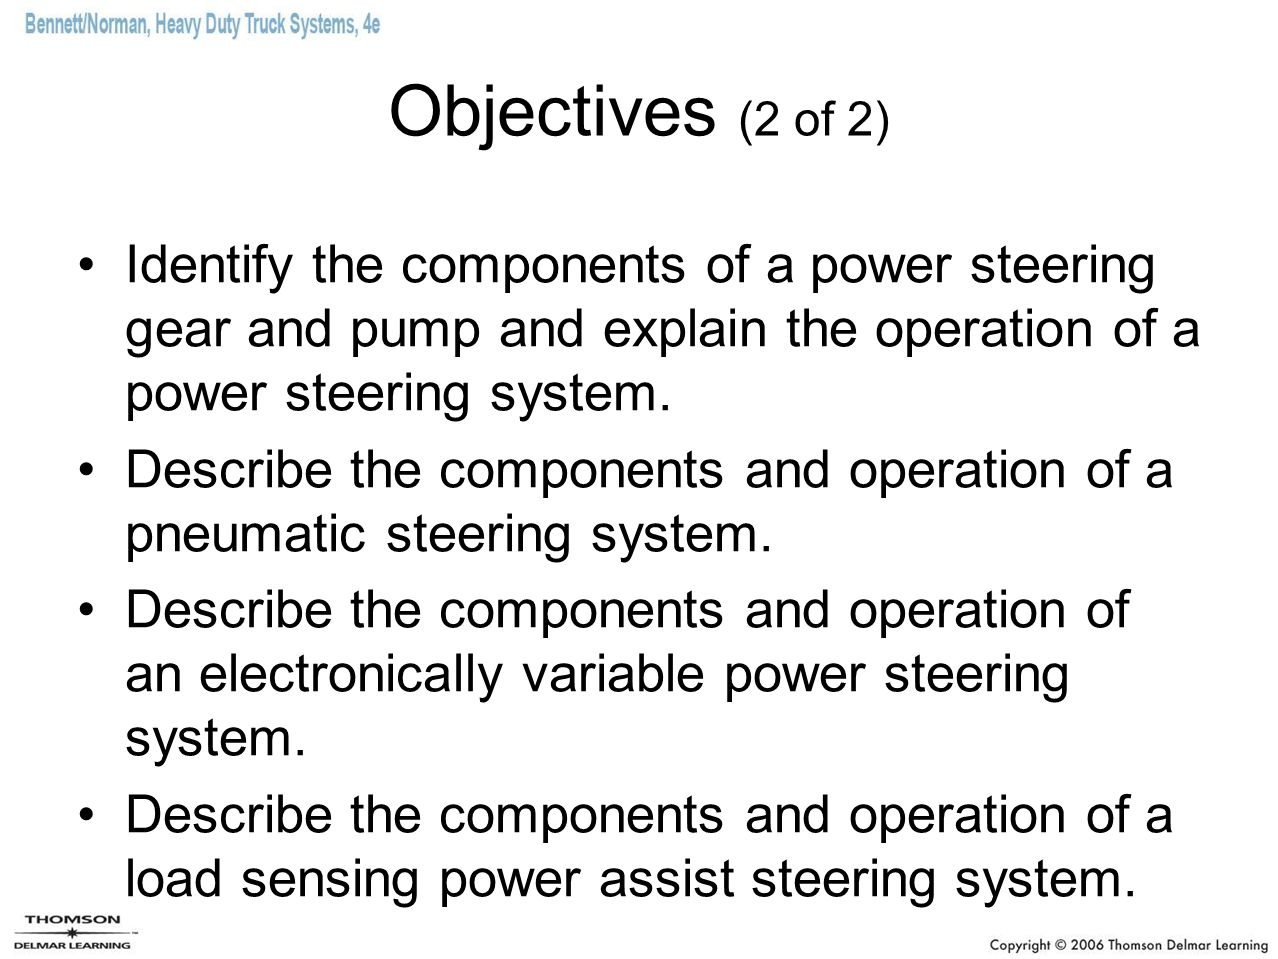 Objectives (2 of 2) Identify the components of a power steering gear and pump and explain the operation of a power steering system.